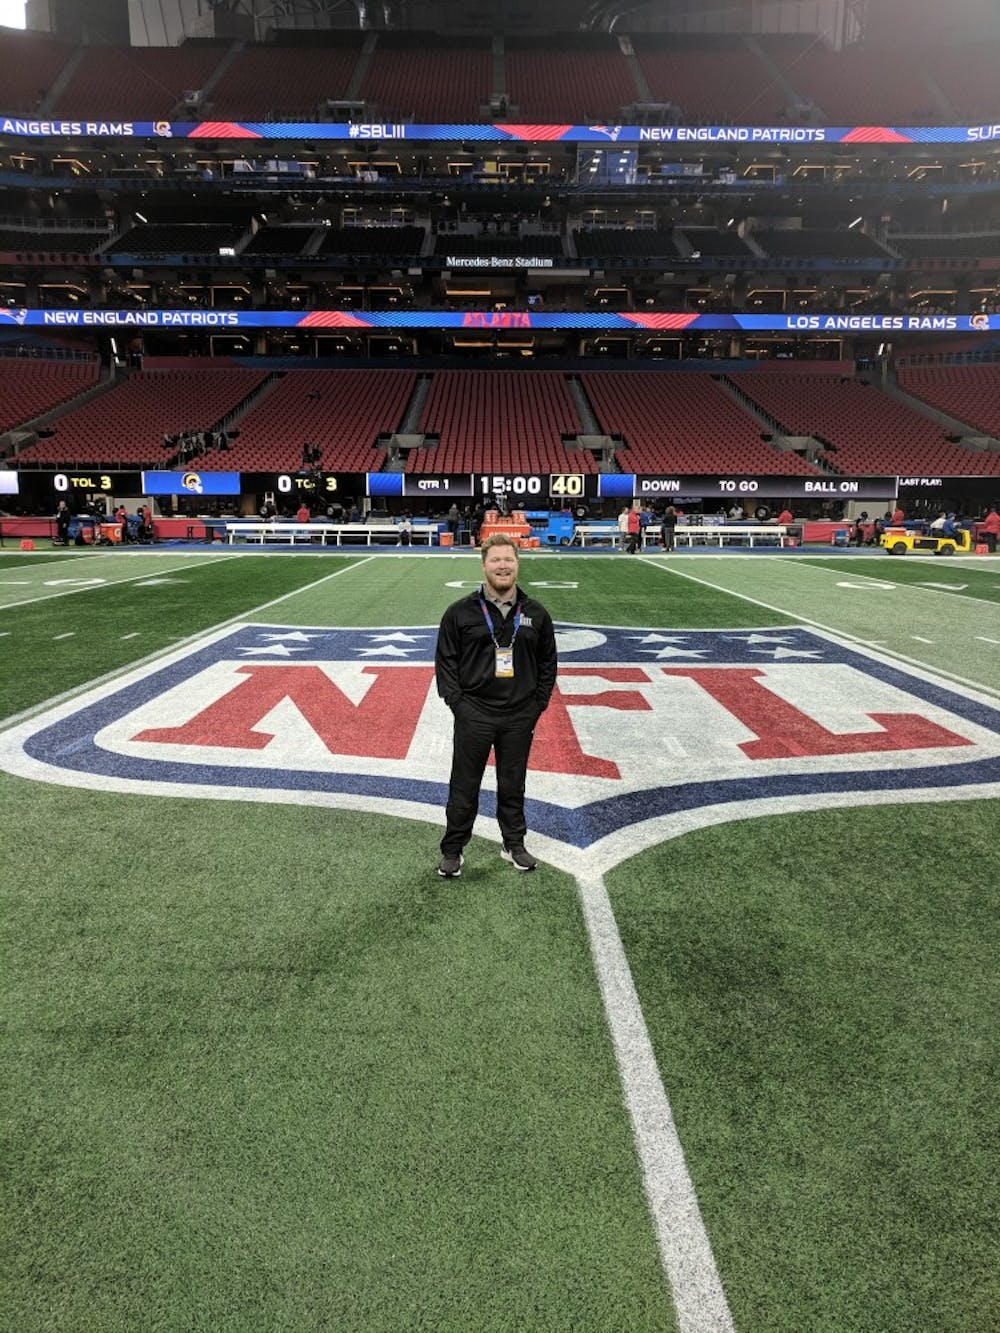 'It was unreal': Turf management major works with grounds crew at Super Bowl LIII